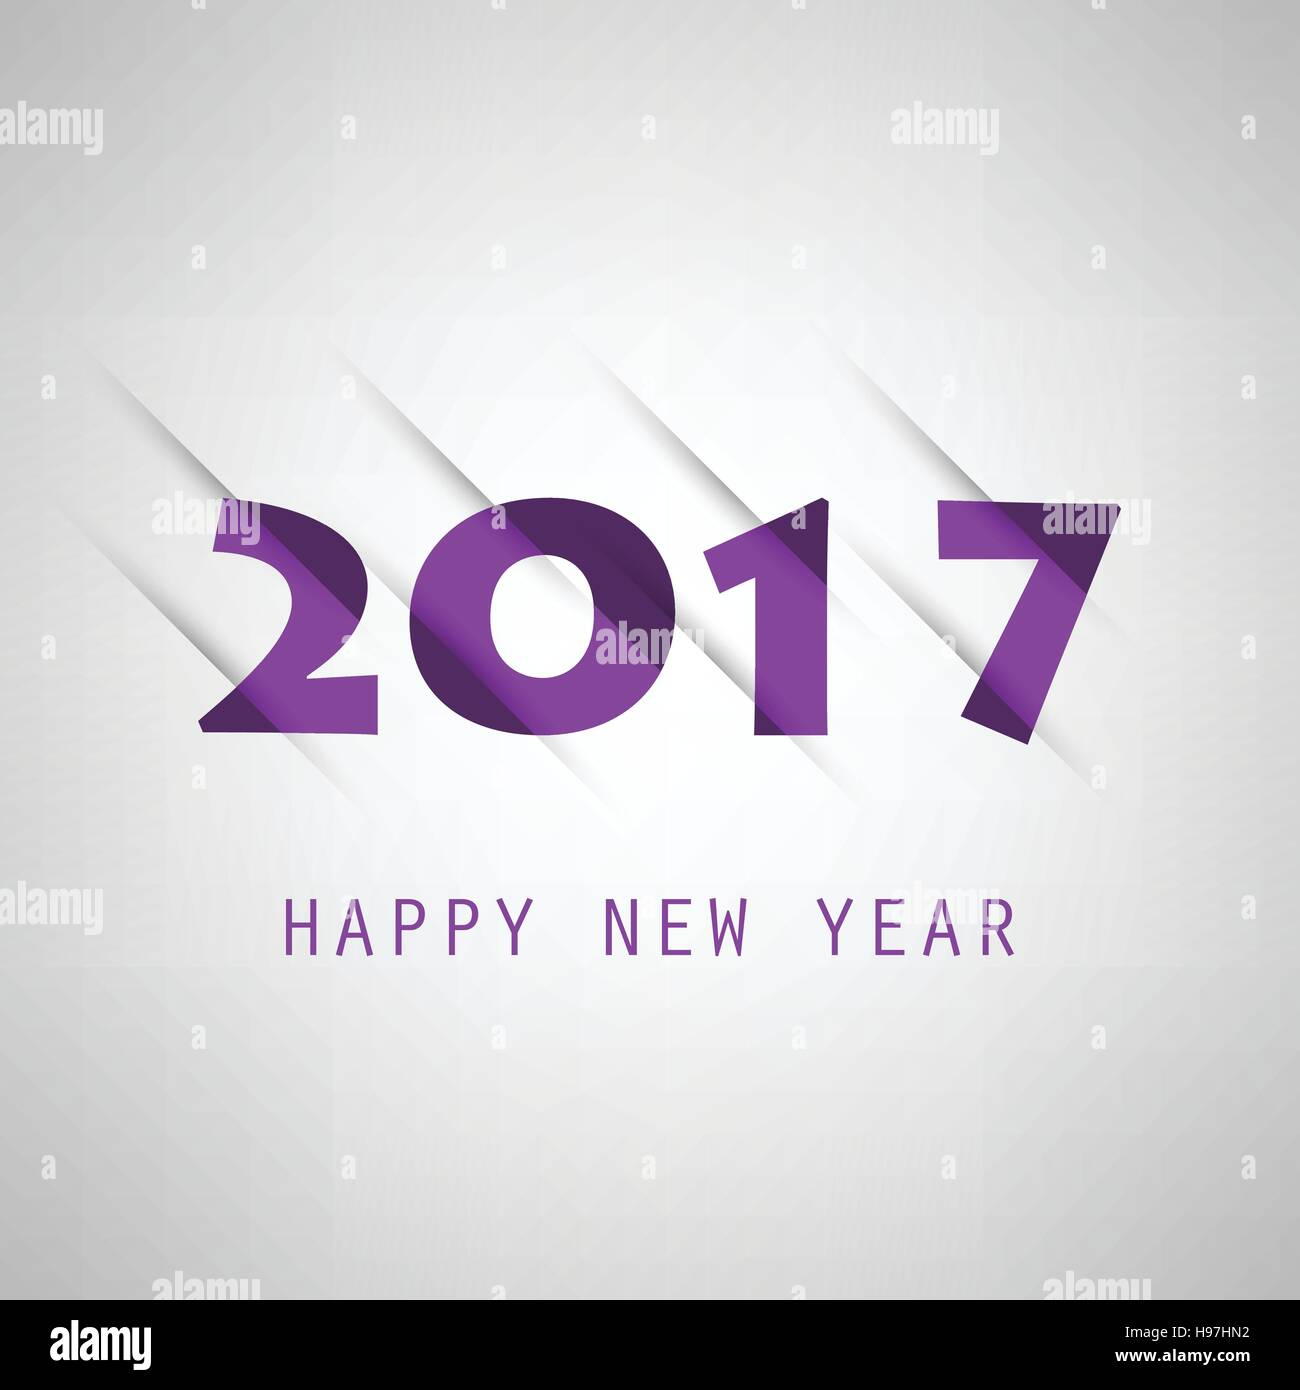 simple purple new year card cover or background design template 2017